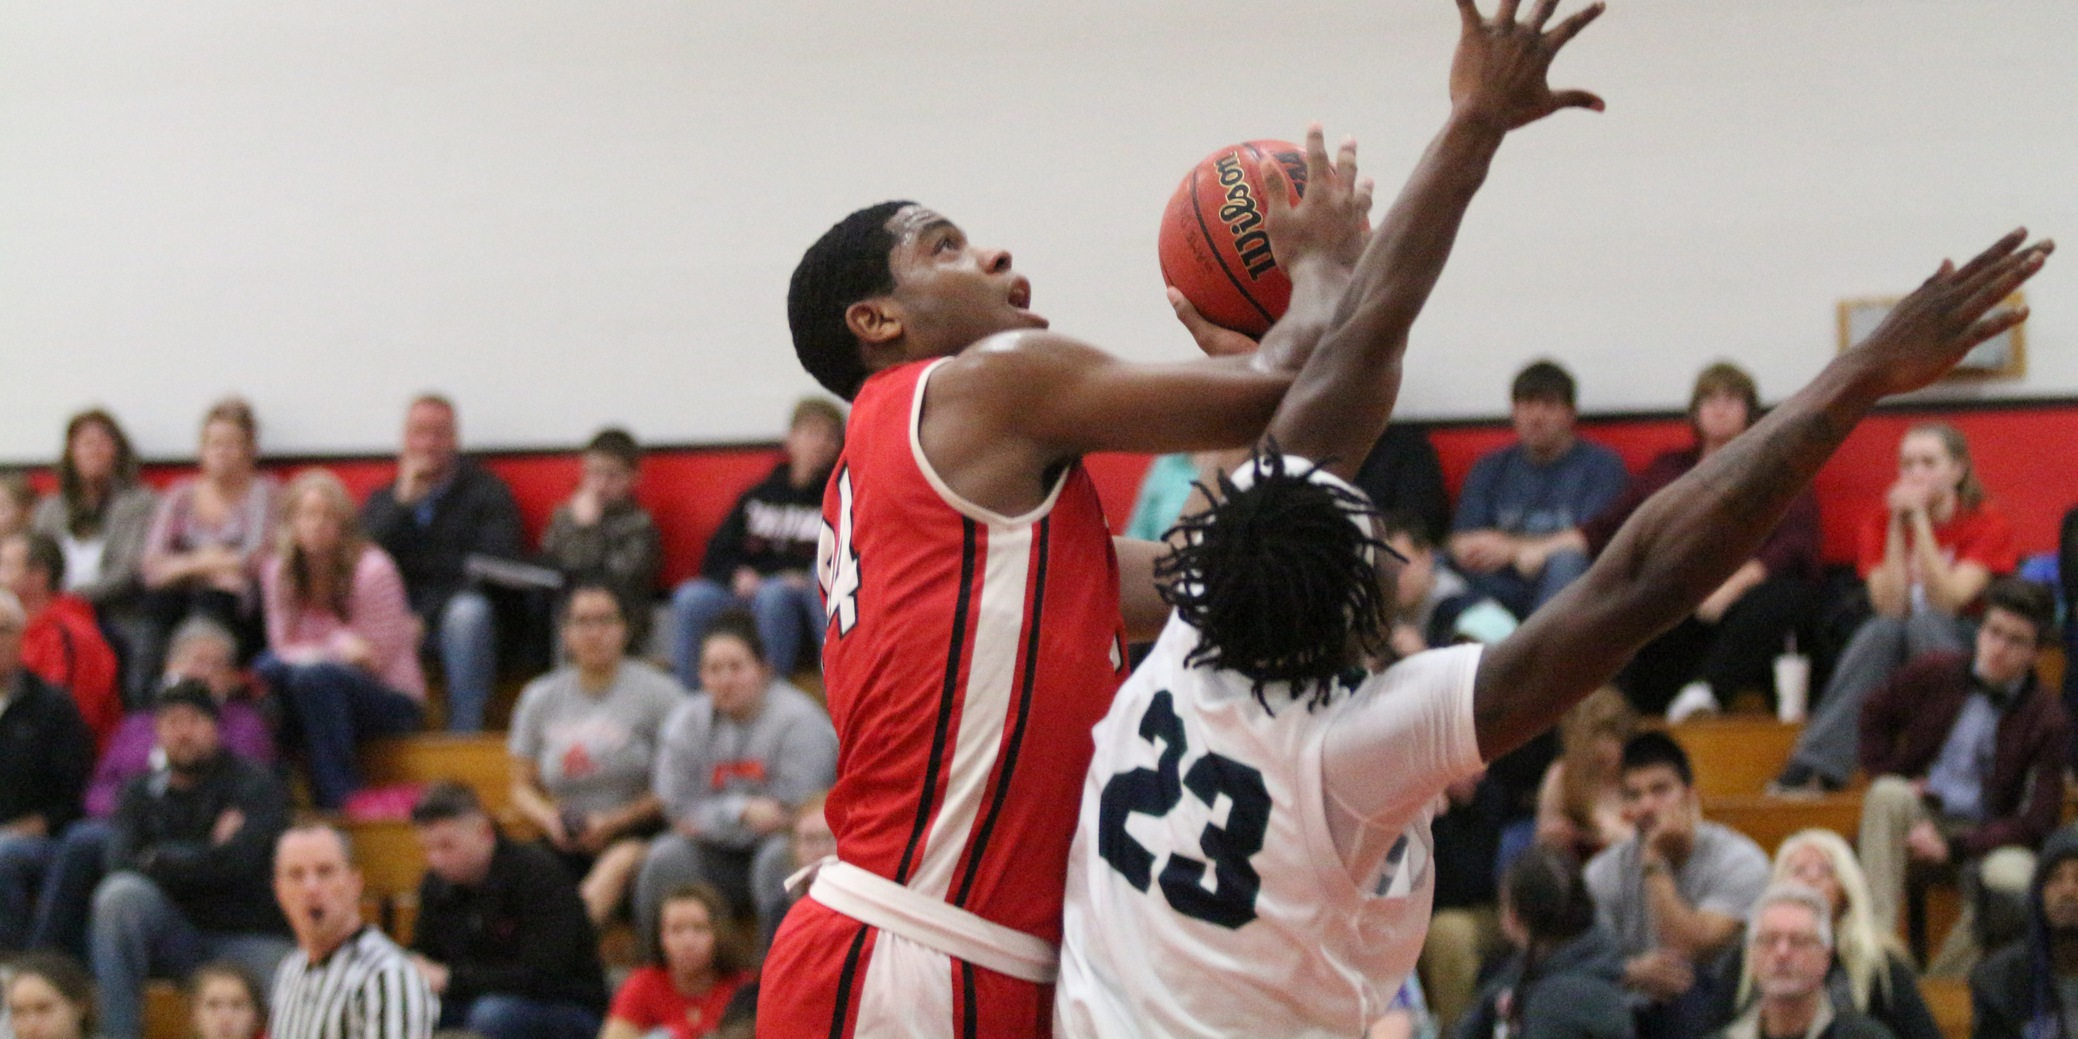 Men's Basketball Falls to Springfield, 74-53